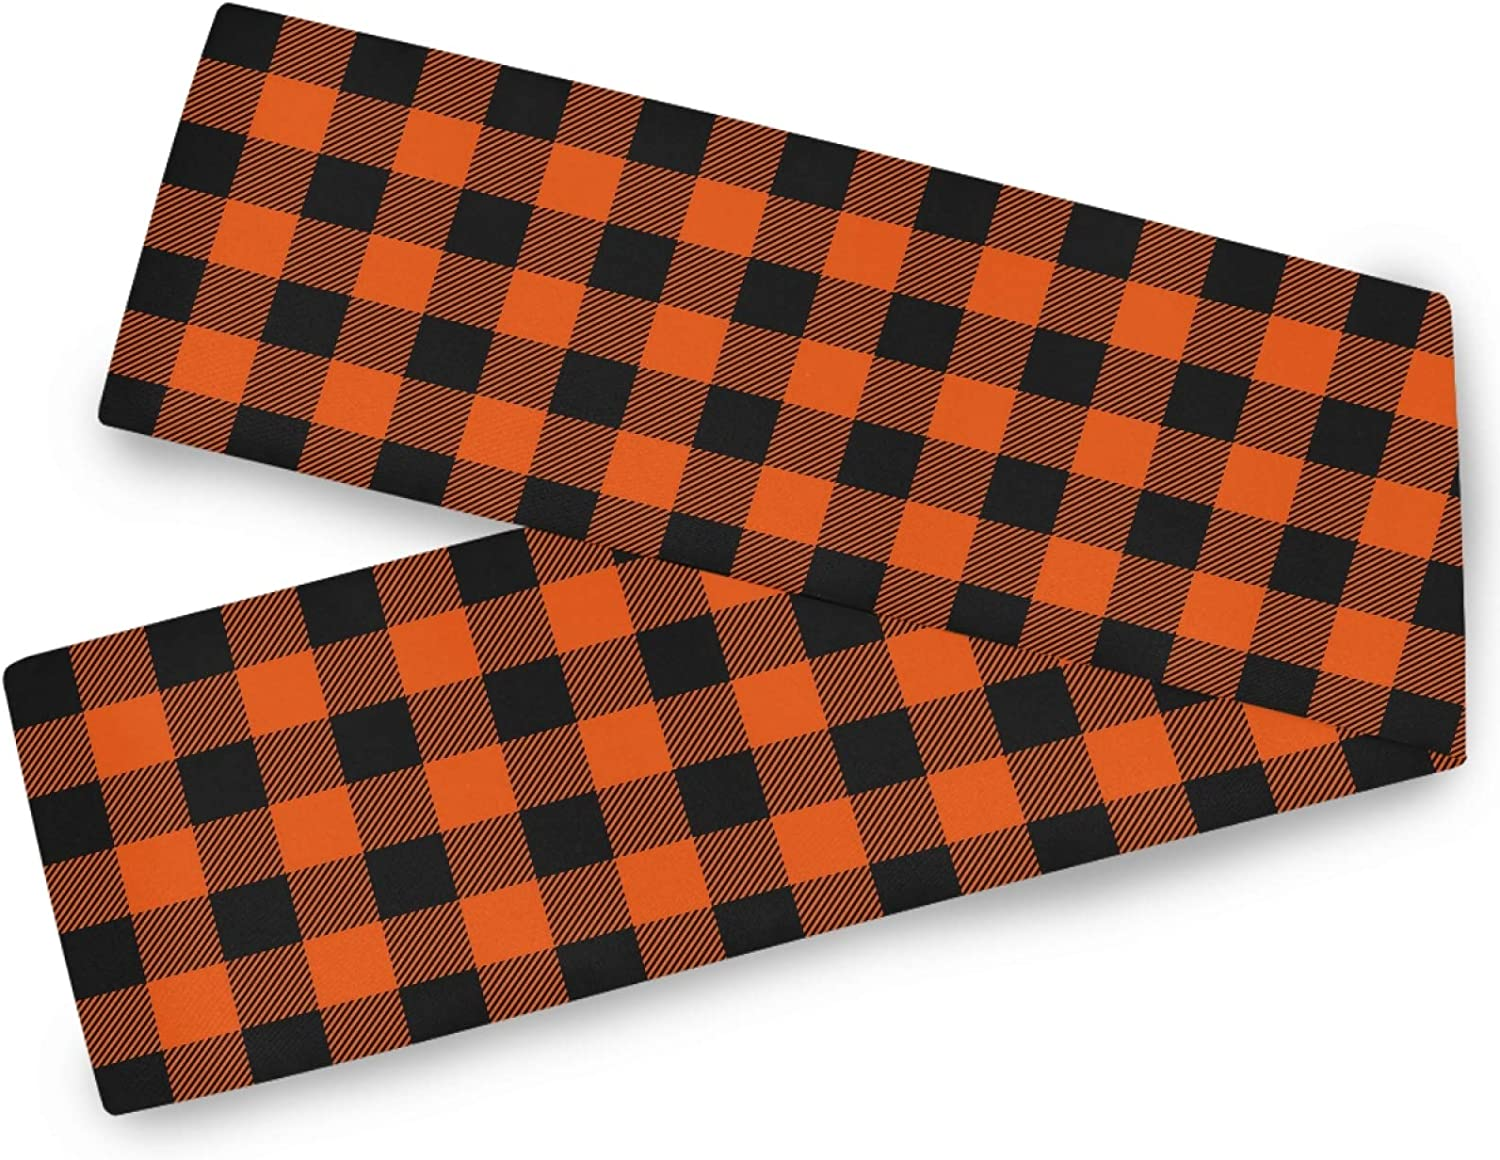 Oarencol Halloween Buffalo Check Table Runner Black Orange Plaid Double Sided 13x70 inch Polyester Table Cloth